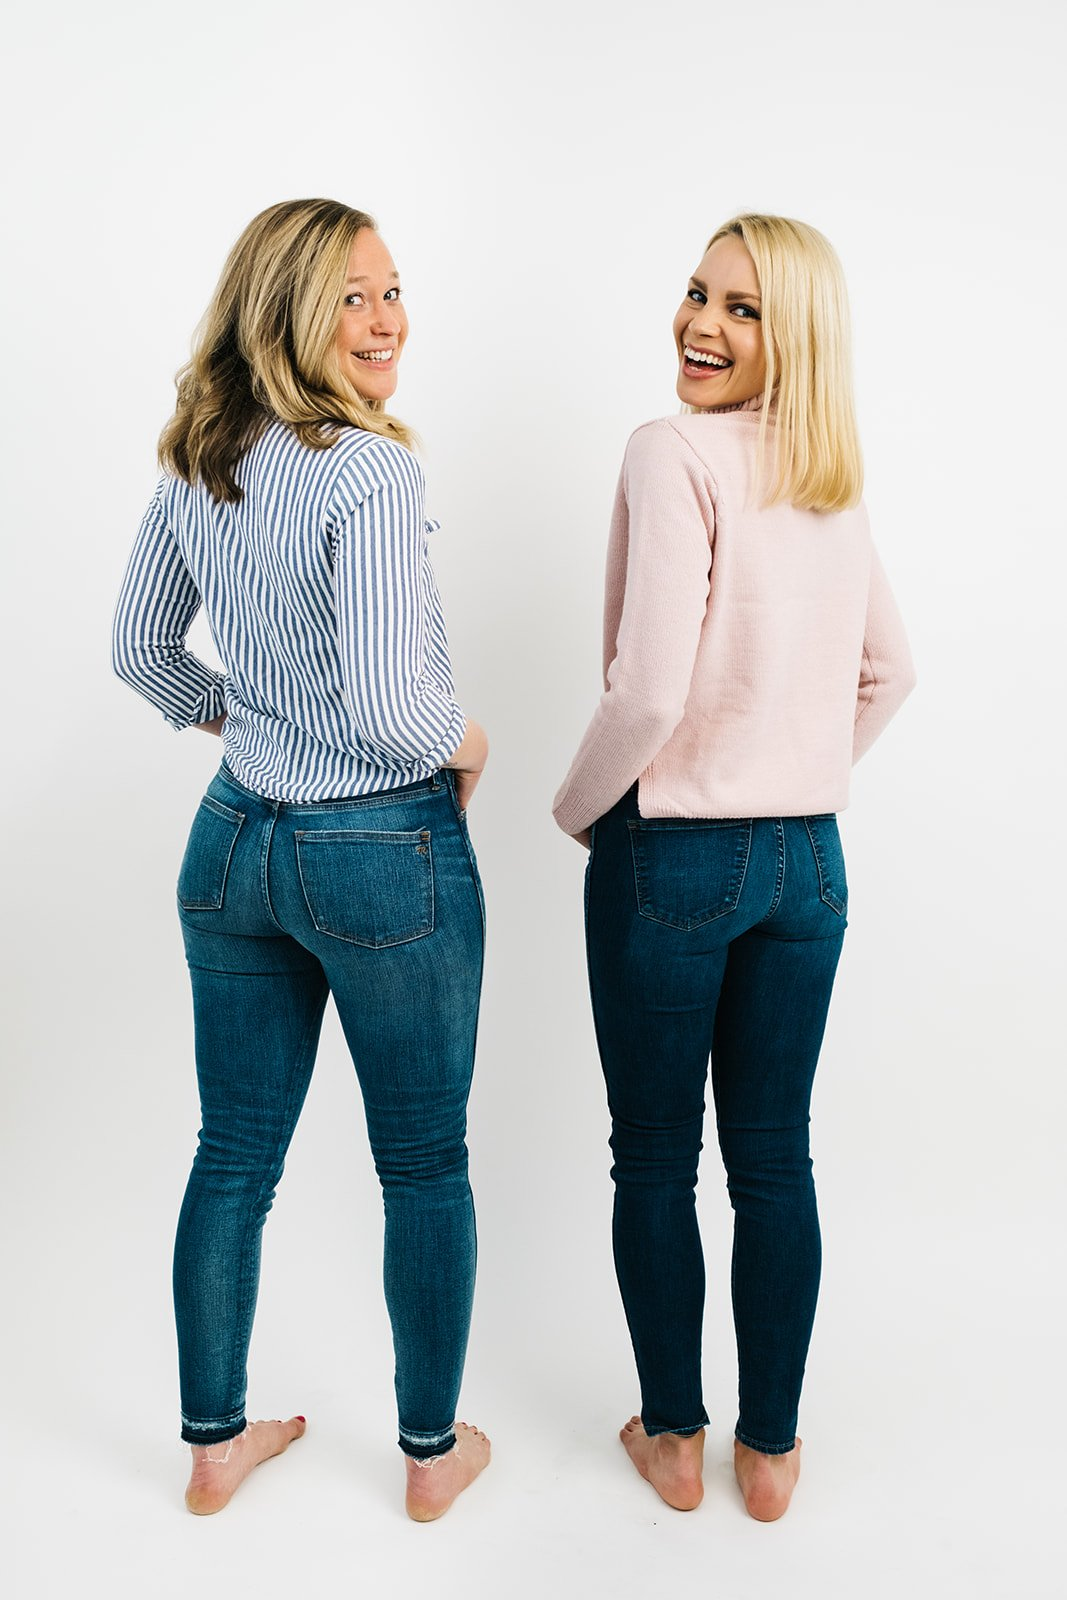 two blonde women in jeans and long sleeved shirts looking over their shoulders